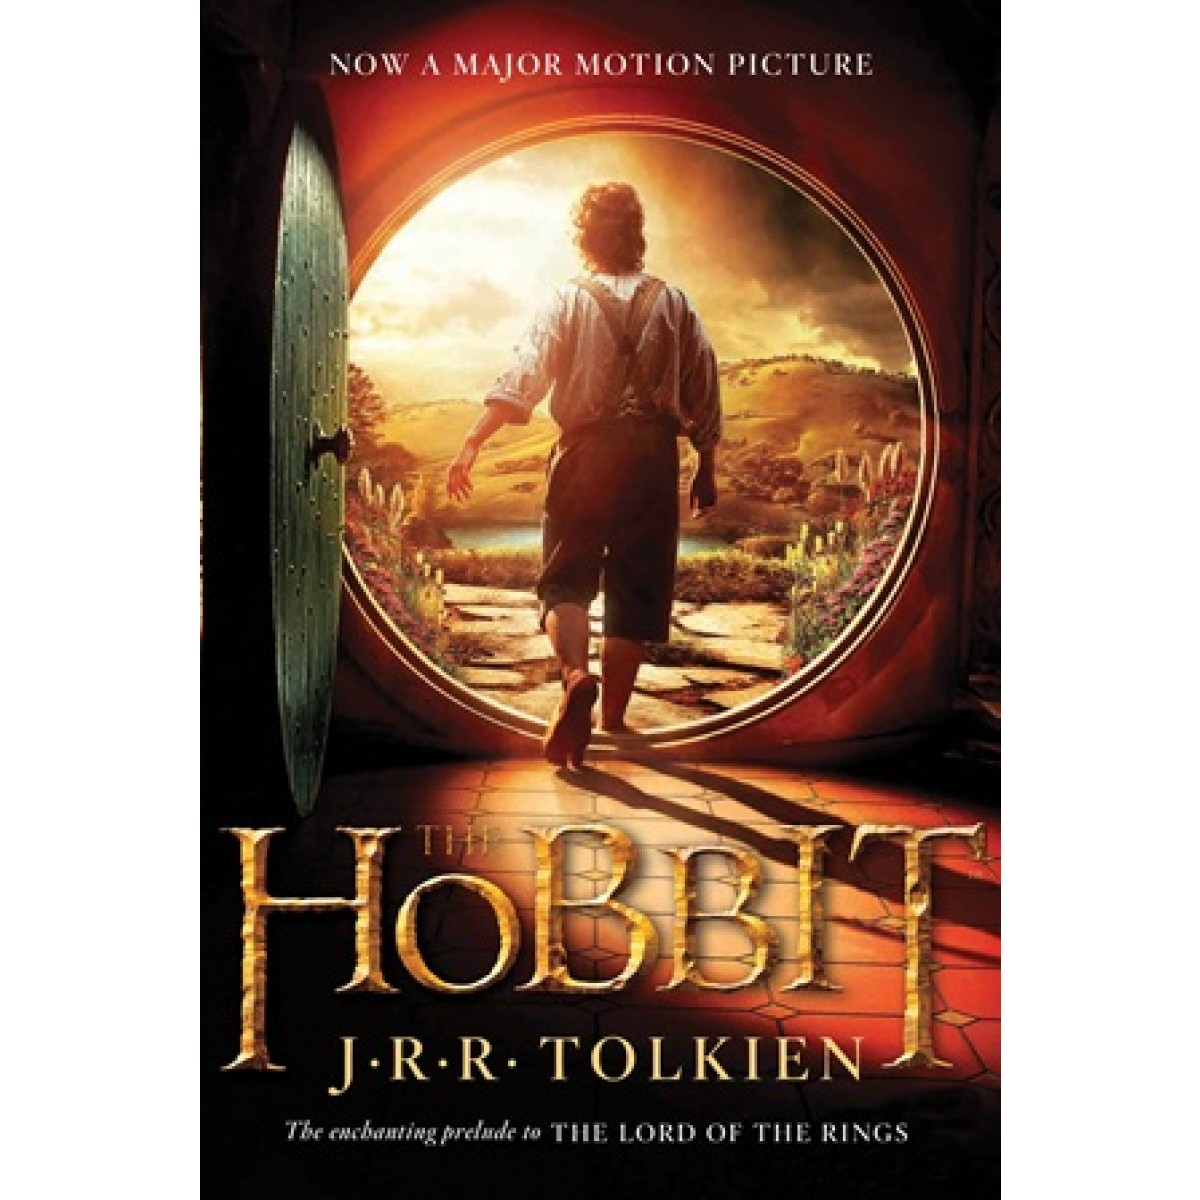 book summary the hobbit The hobbit chapters 6 - 7 summary - the hobbit by j r r tolkien chapters 6 - 7 summary and analysis.